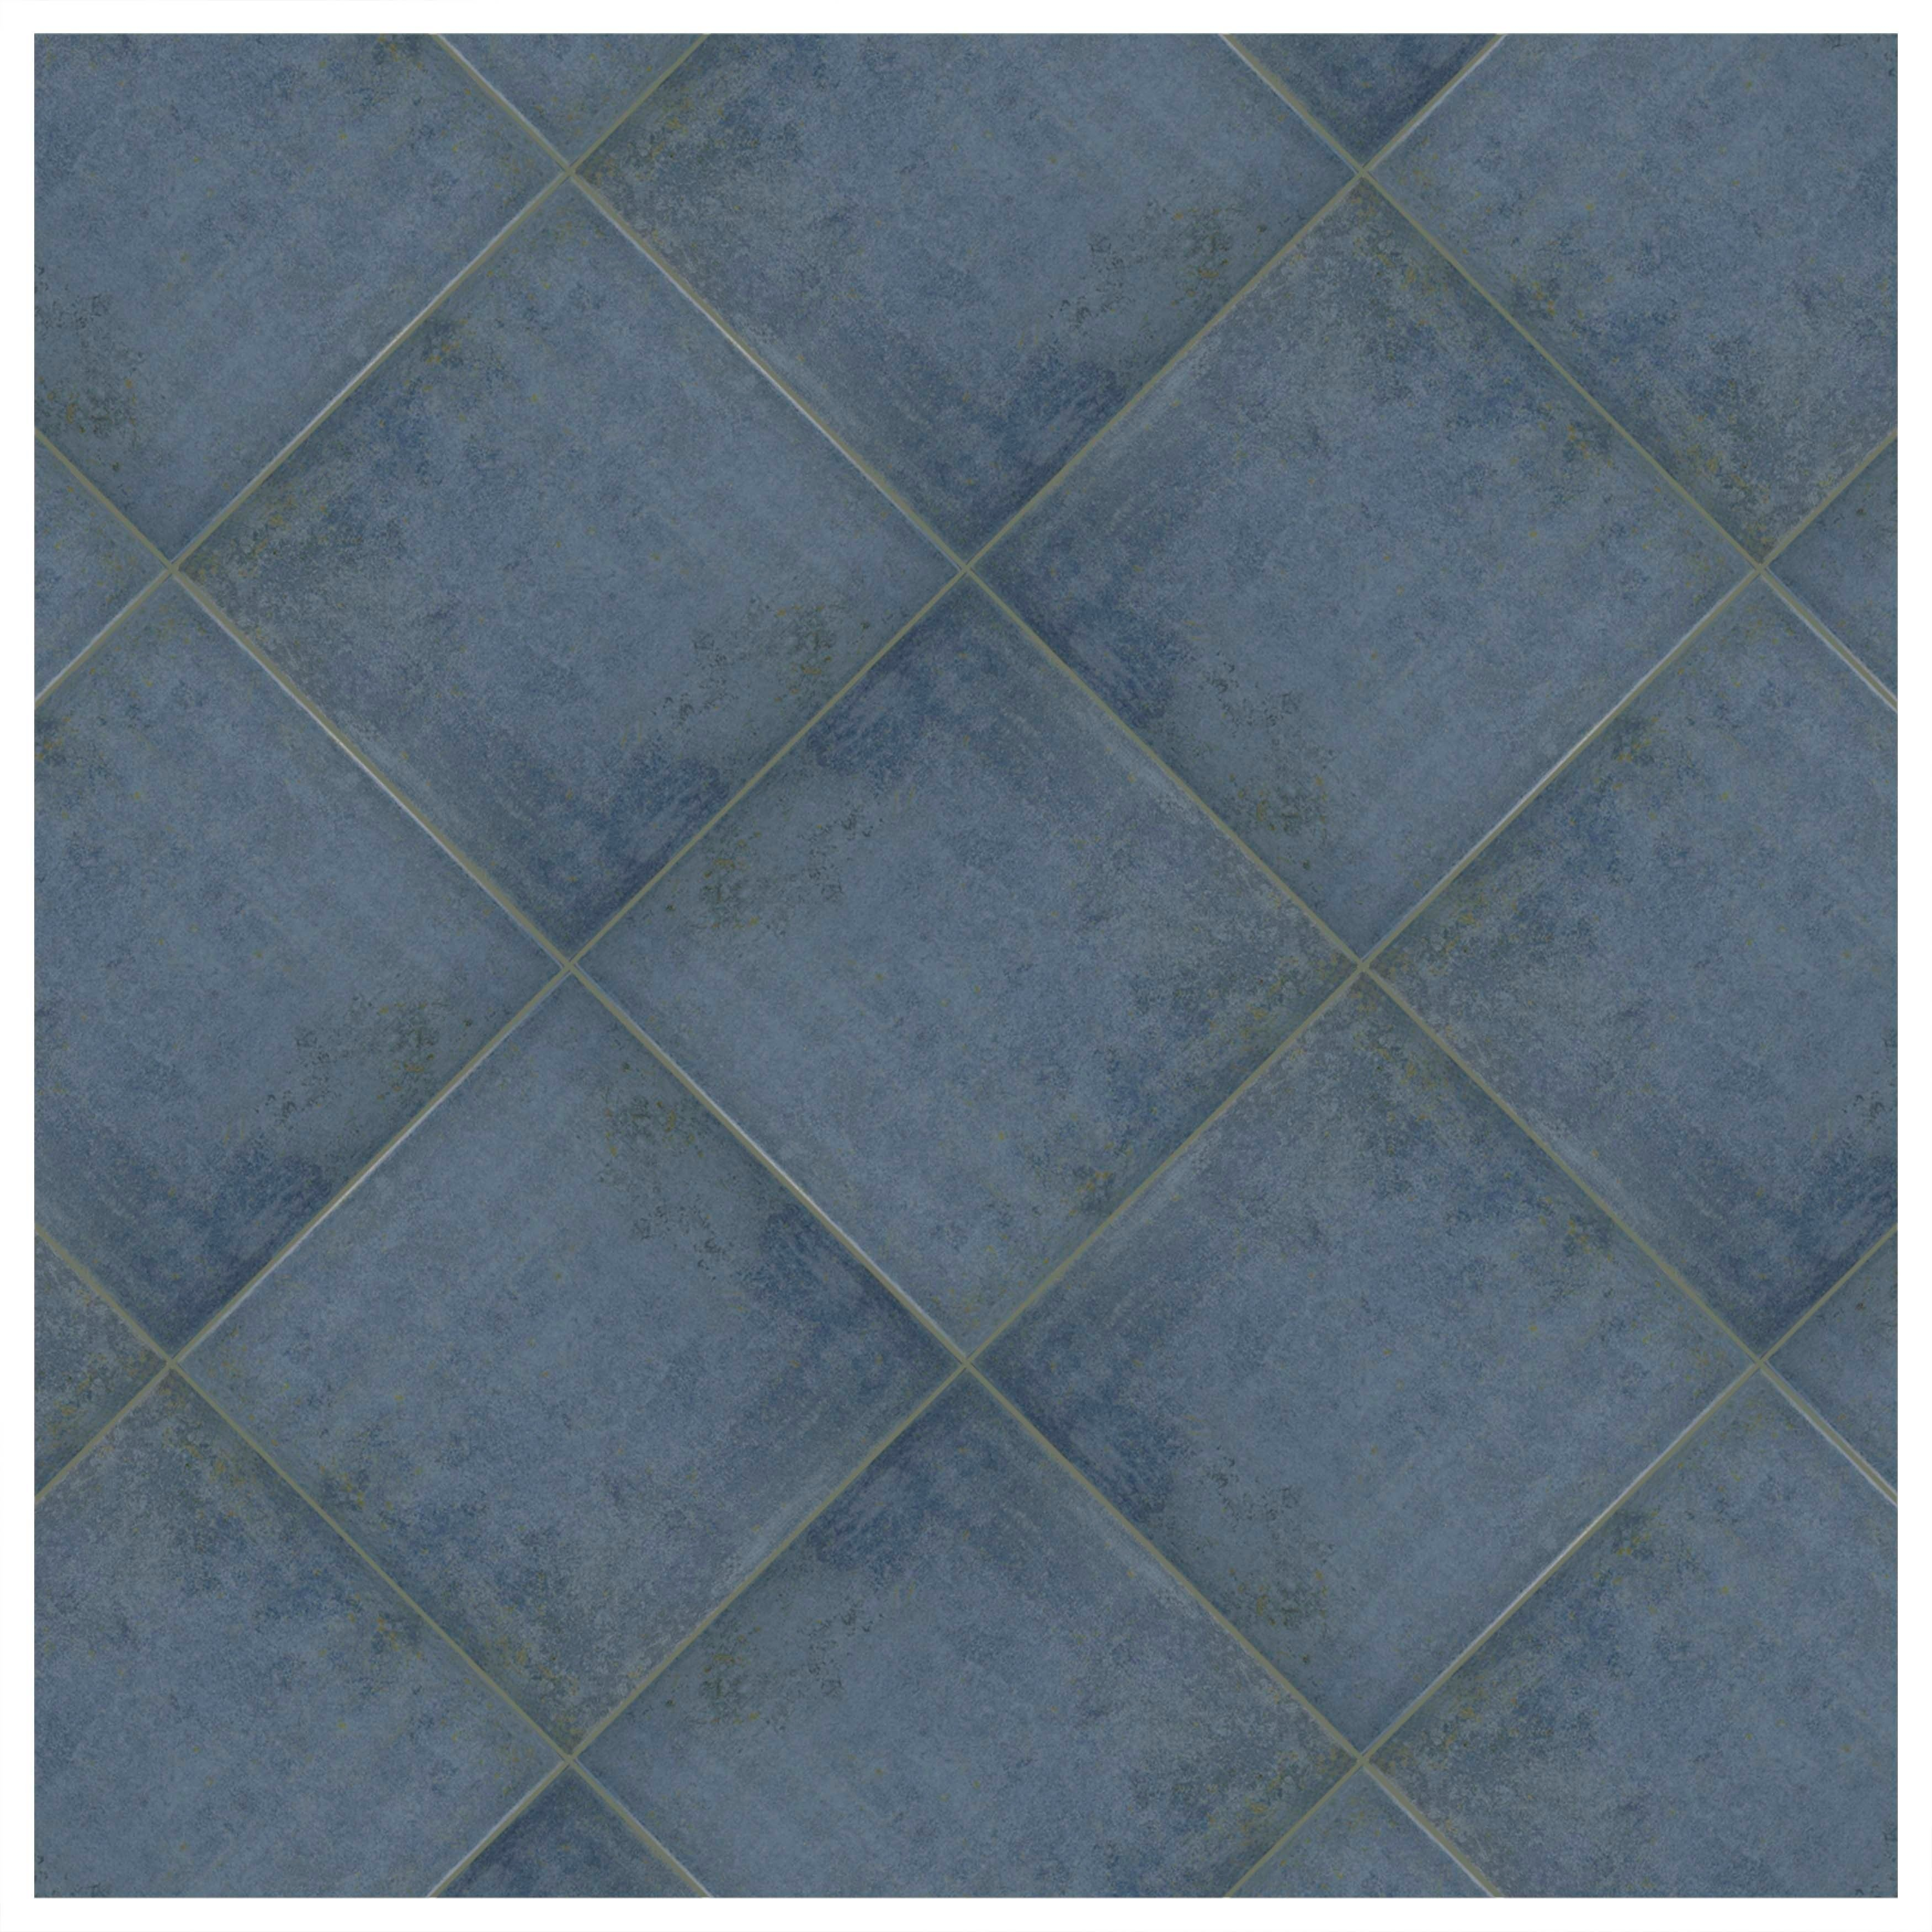 Somertile 13x13 inch quijot azul ceramic floor and wall tile case somertile 13x13 inch quijot azul ceramic floor and wall tile case of 14 free shipping today overstock 17611026 dailygadgetfo Image collections